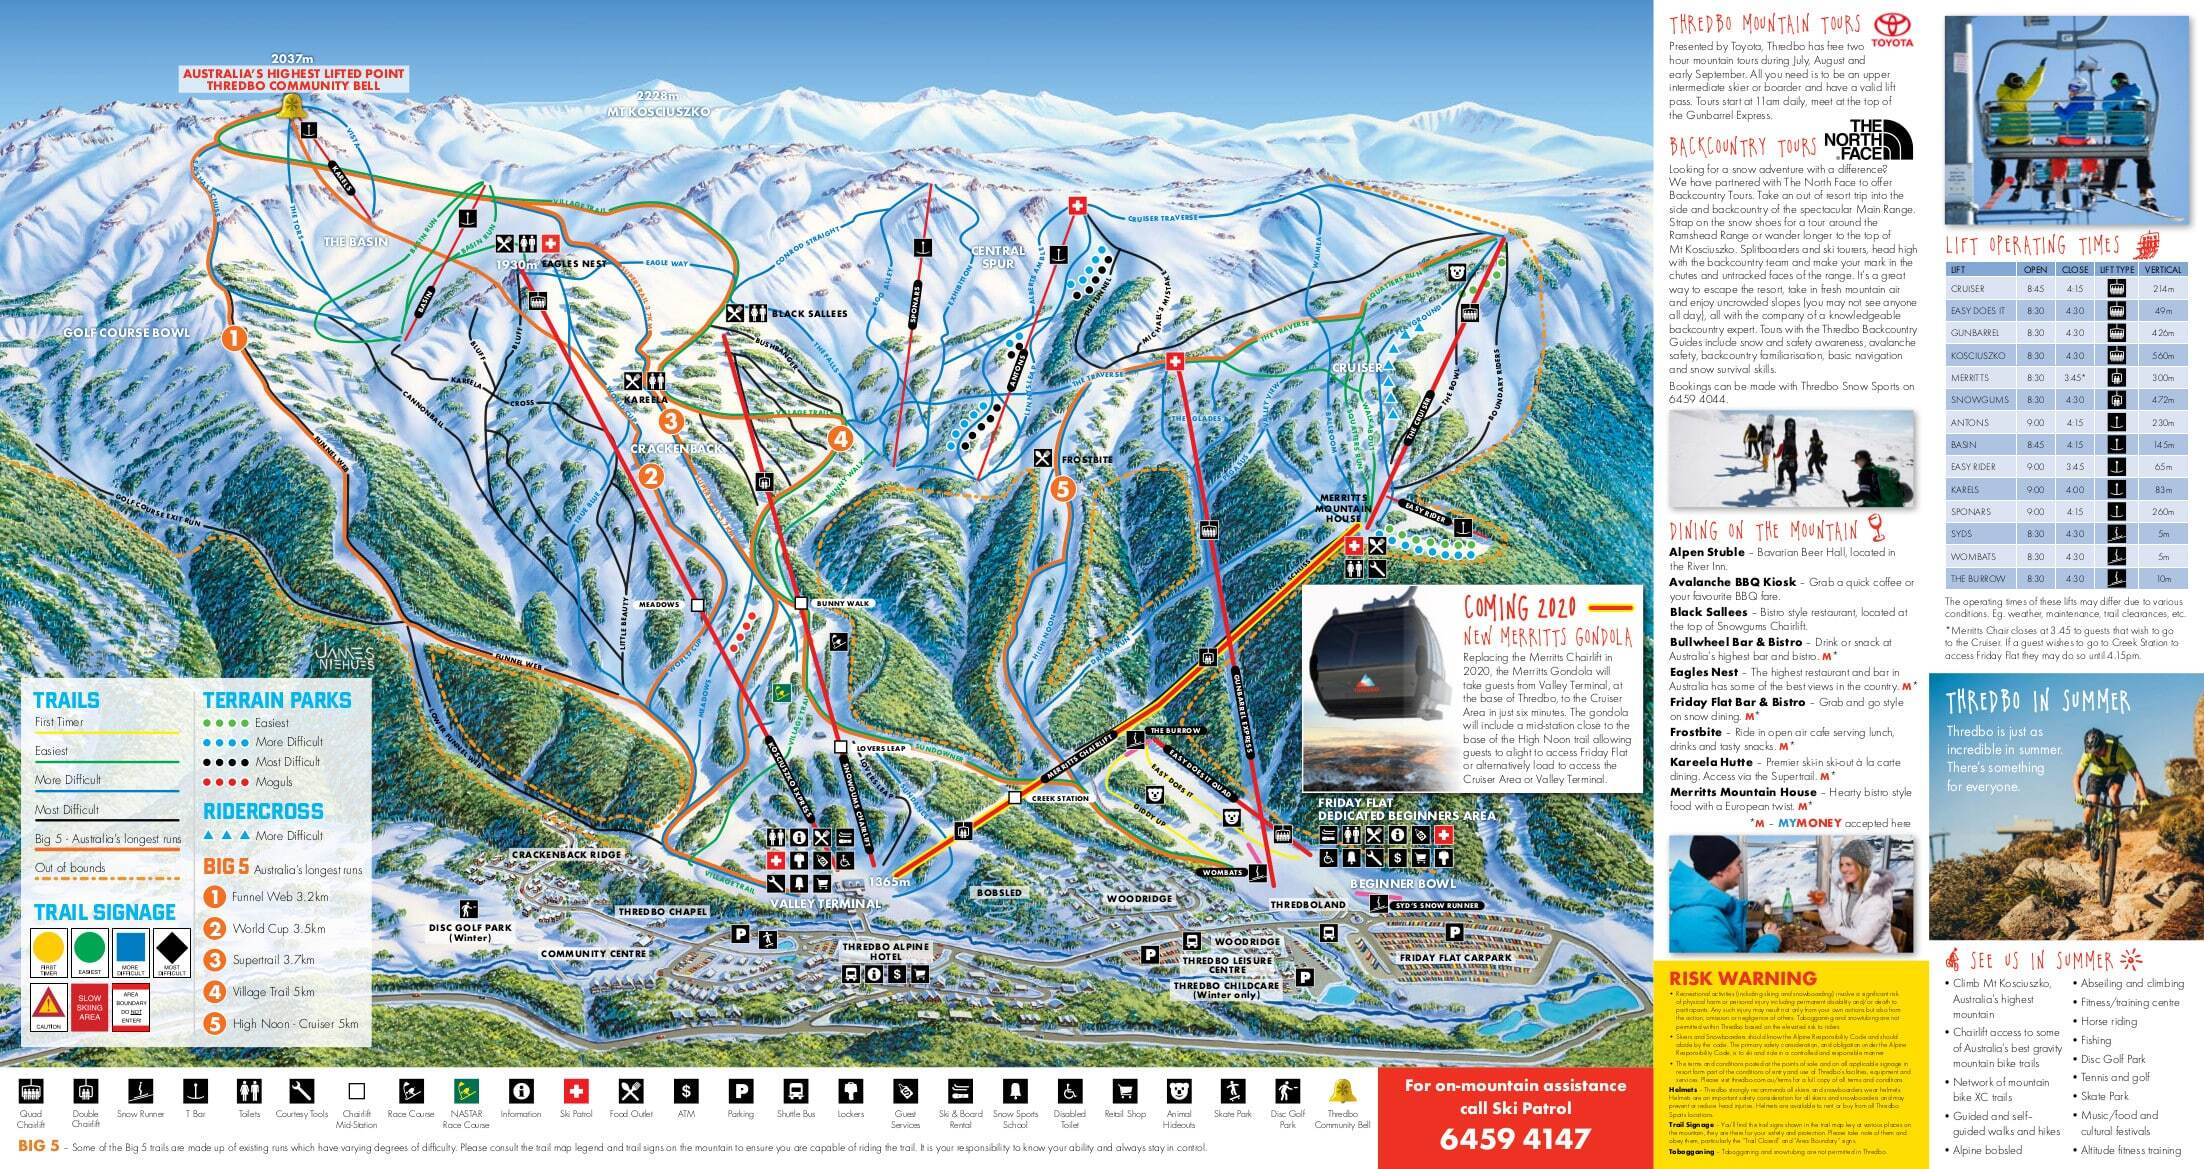 Thredbo Piste / Trail Map